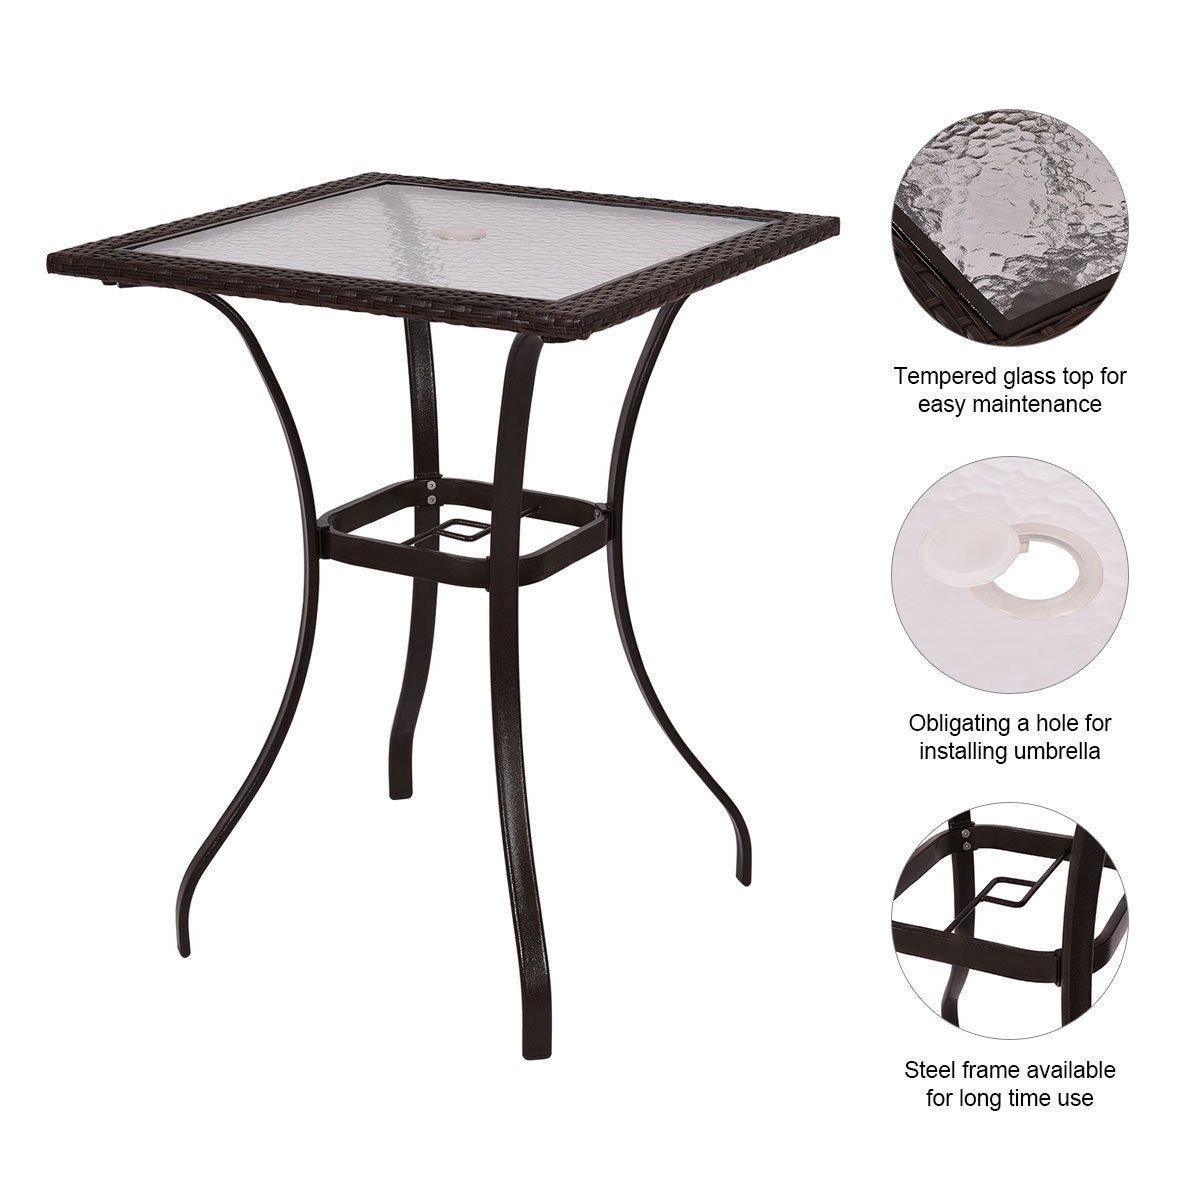 GoodGoods LLC Bar Square Table Glass Modern and Useful Outdoor Patio Rattan Wicker Top Yard Garden Furniture New by GoodGoods LLC (Image #9)